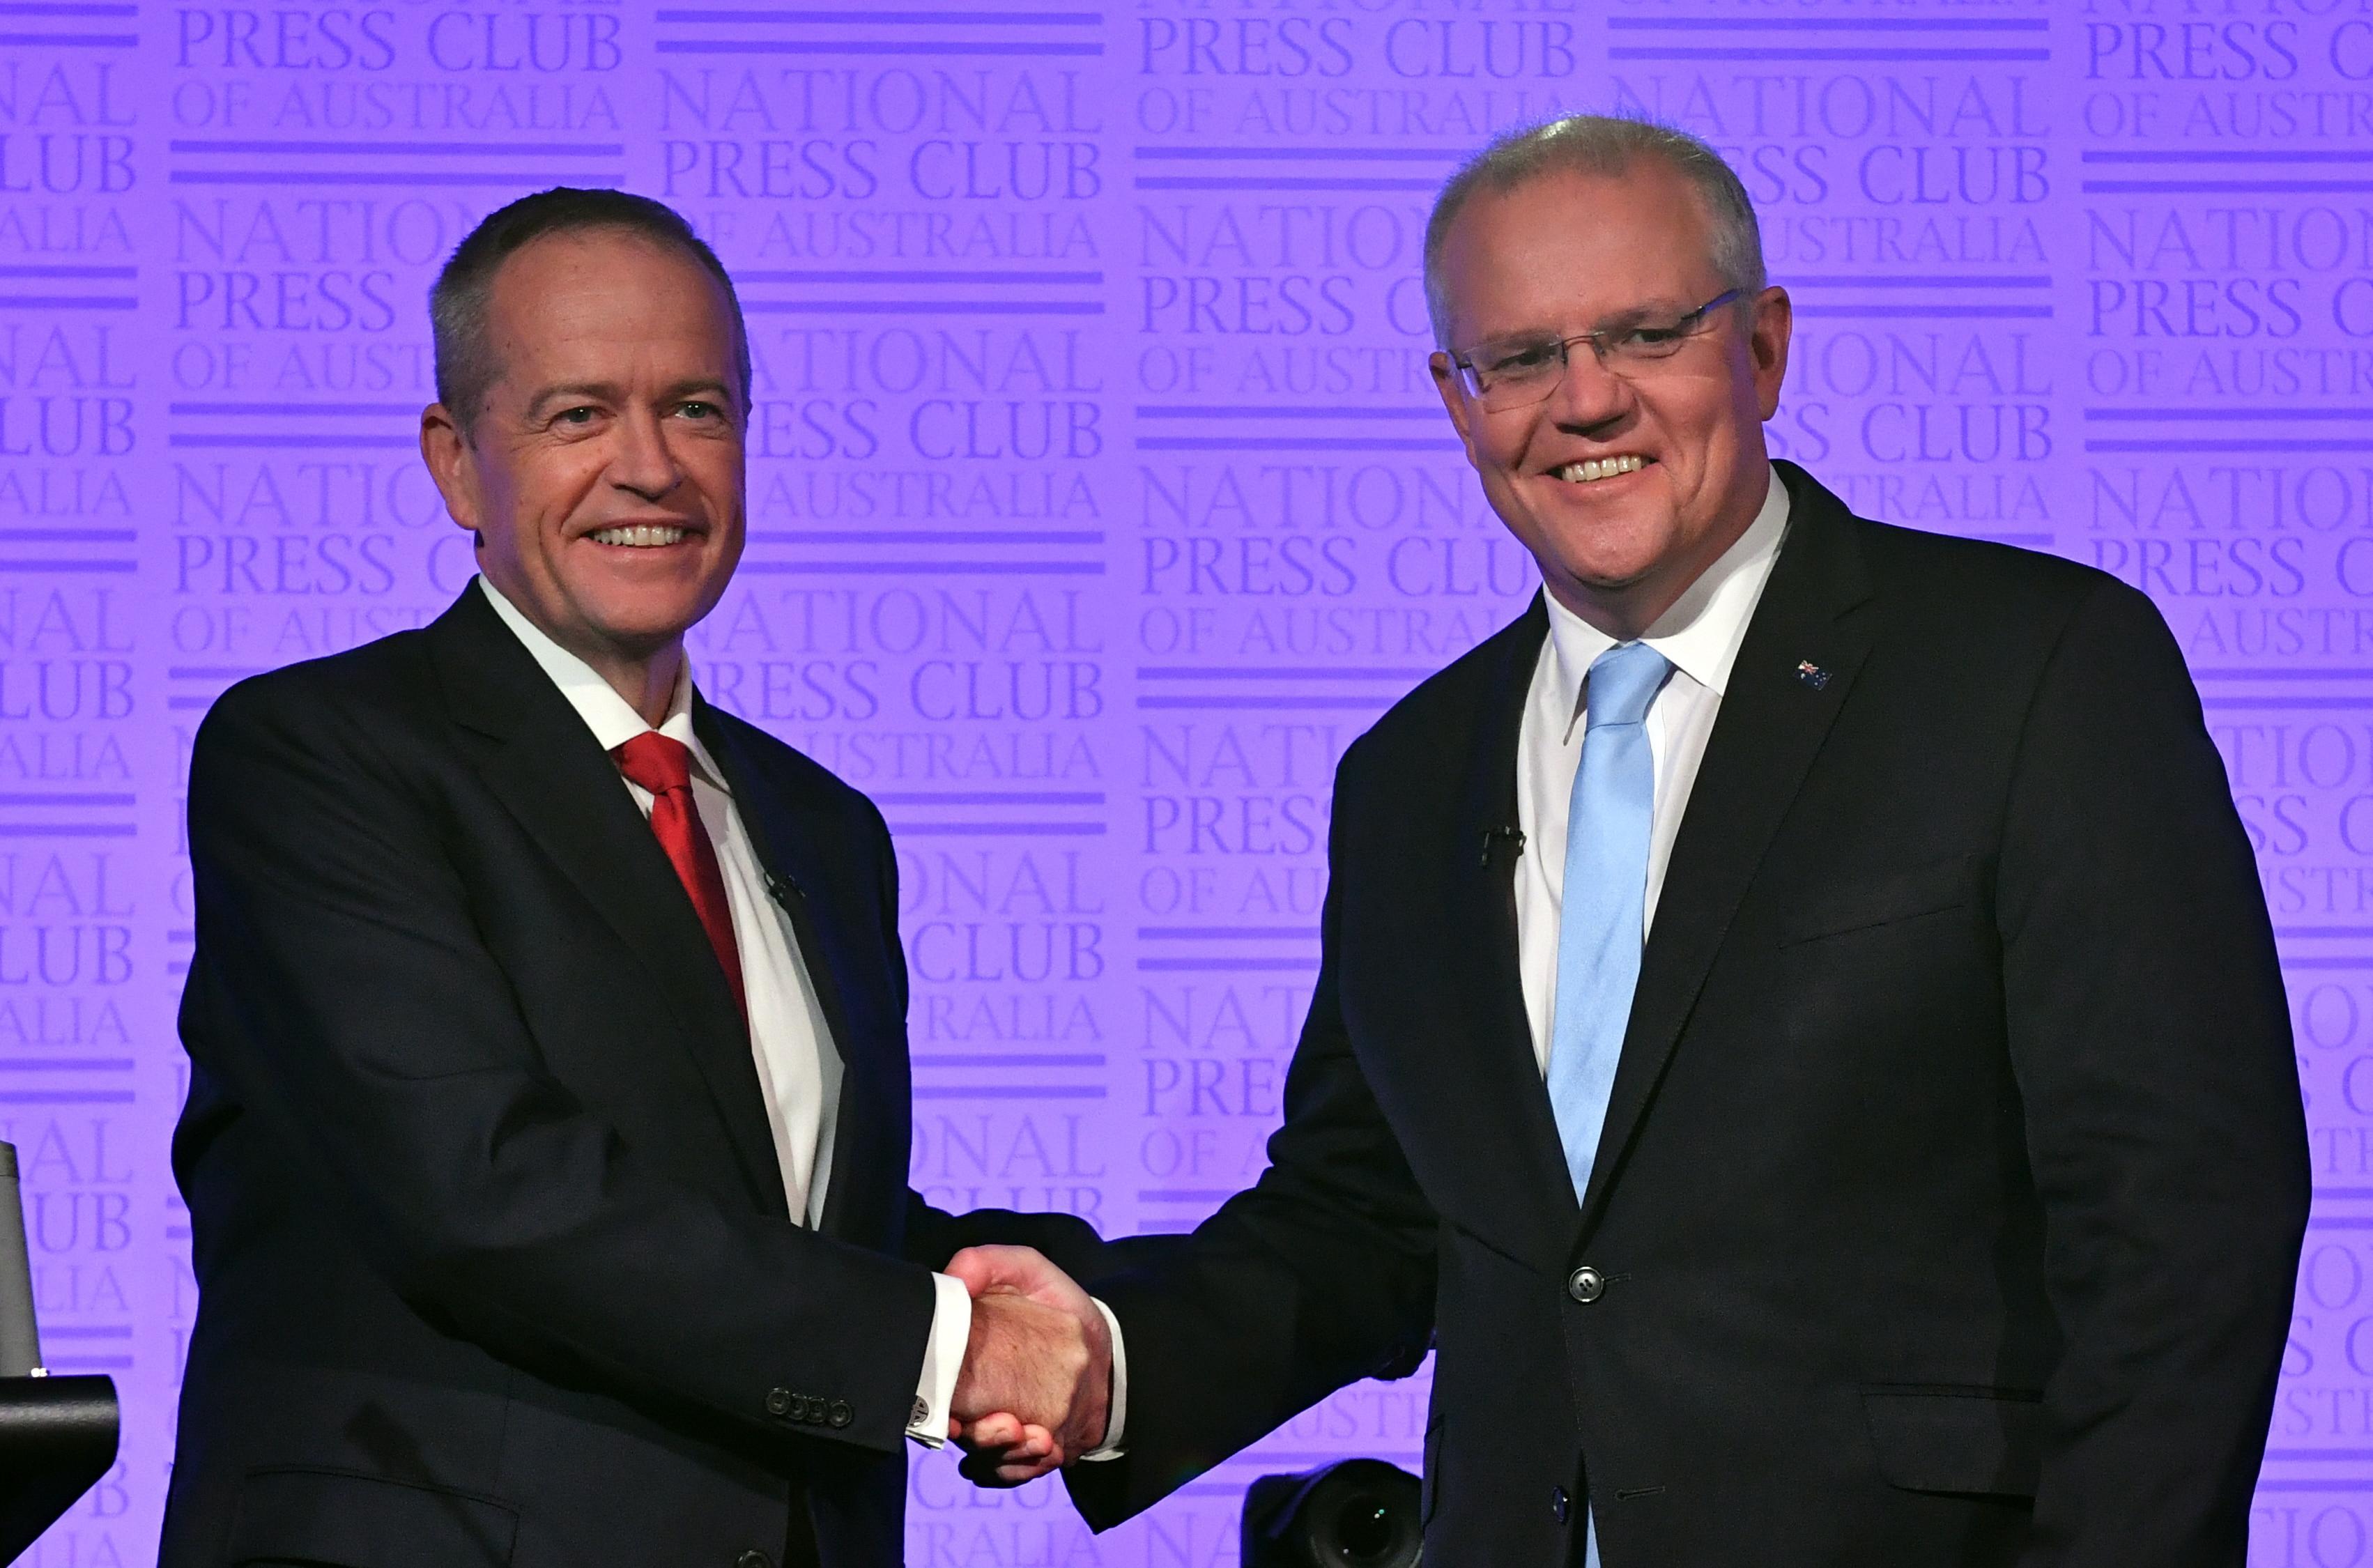 Leader of the Opposition Bill Shorten and Prime Minister Scott Morrison shake hands before the third Leaders Debate at the National Press Club in Canberra, Wednesday, May 8, 2019. (AAP Image/Mick Tsikas) NO ARCHIVING